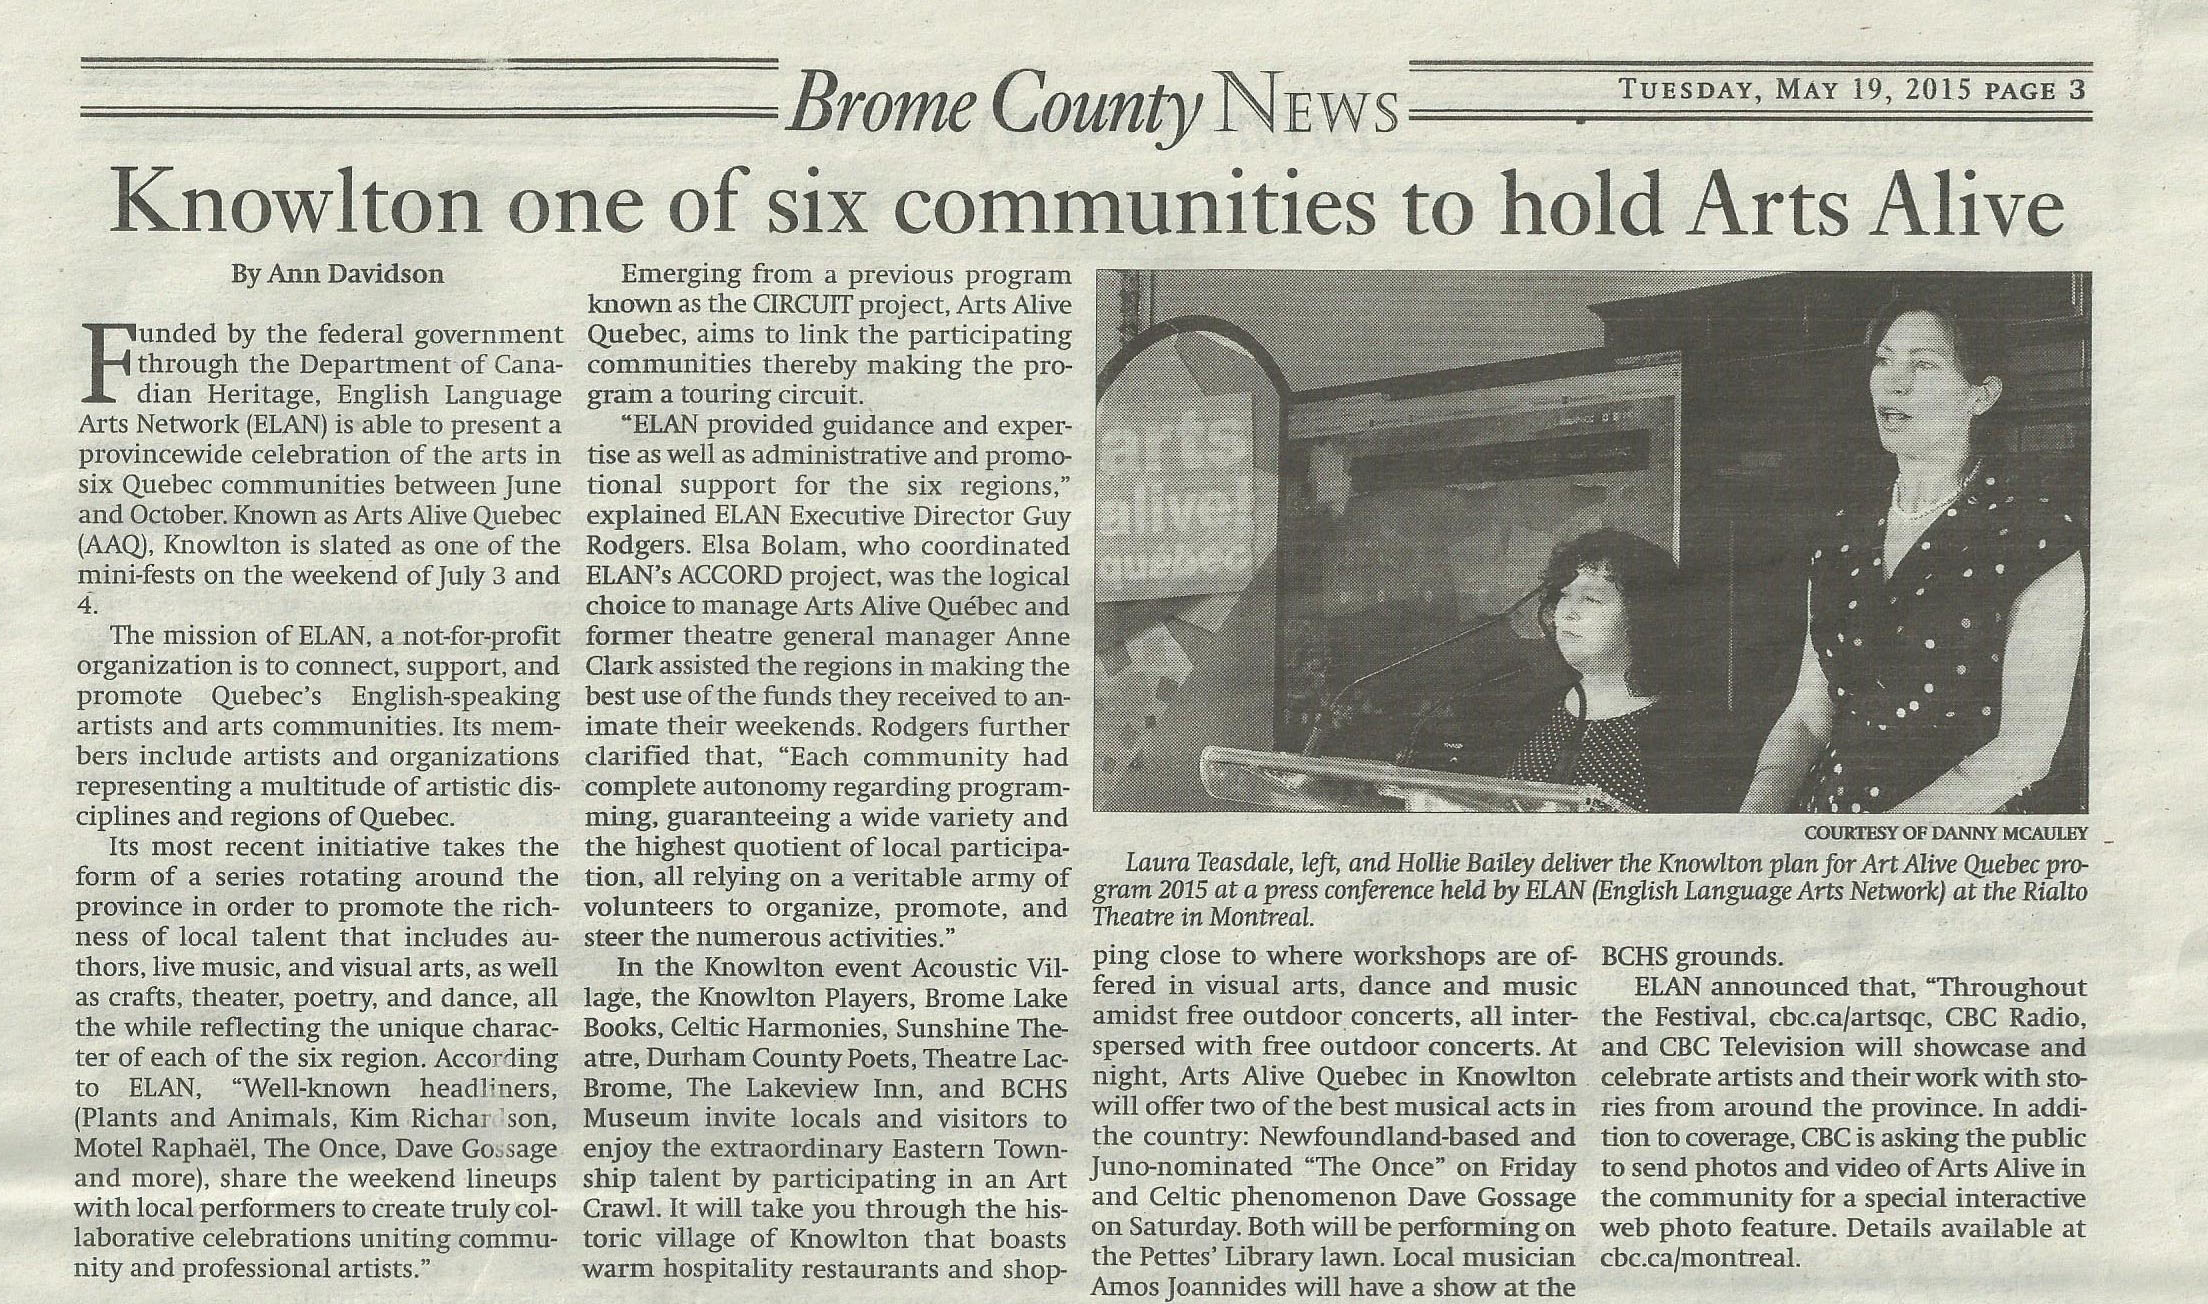 AAQ- Brome County News (2015)